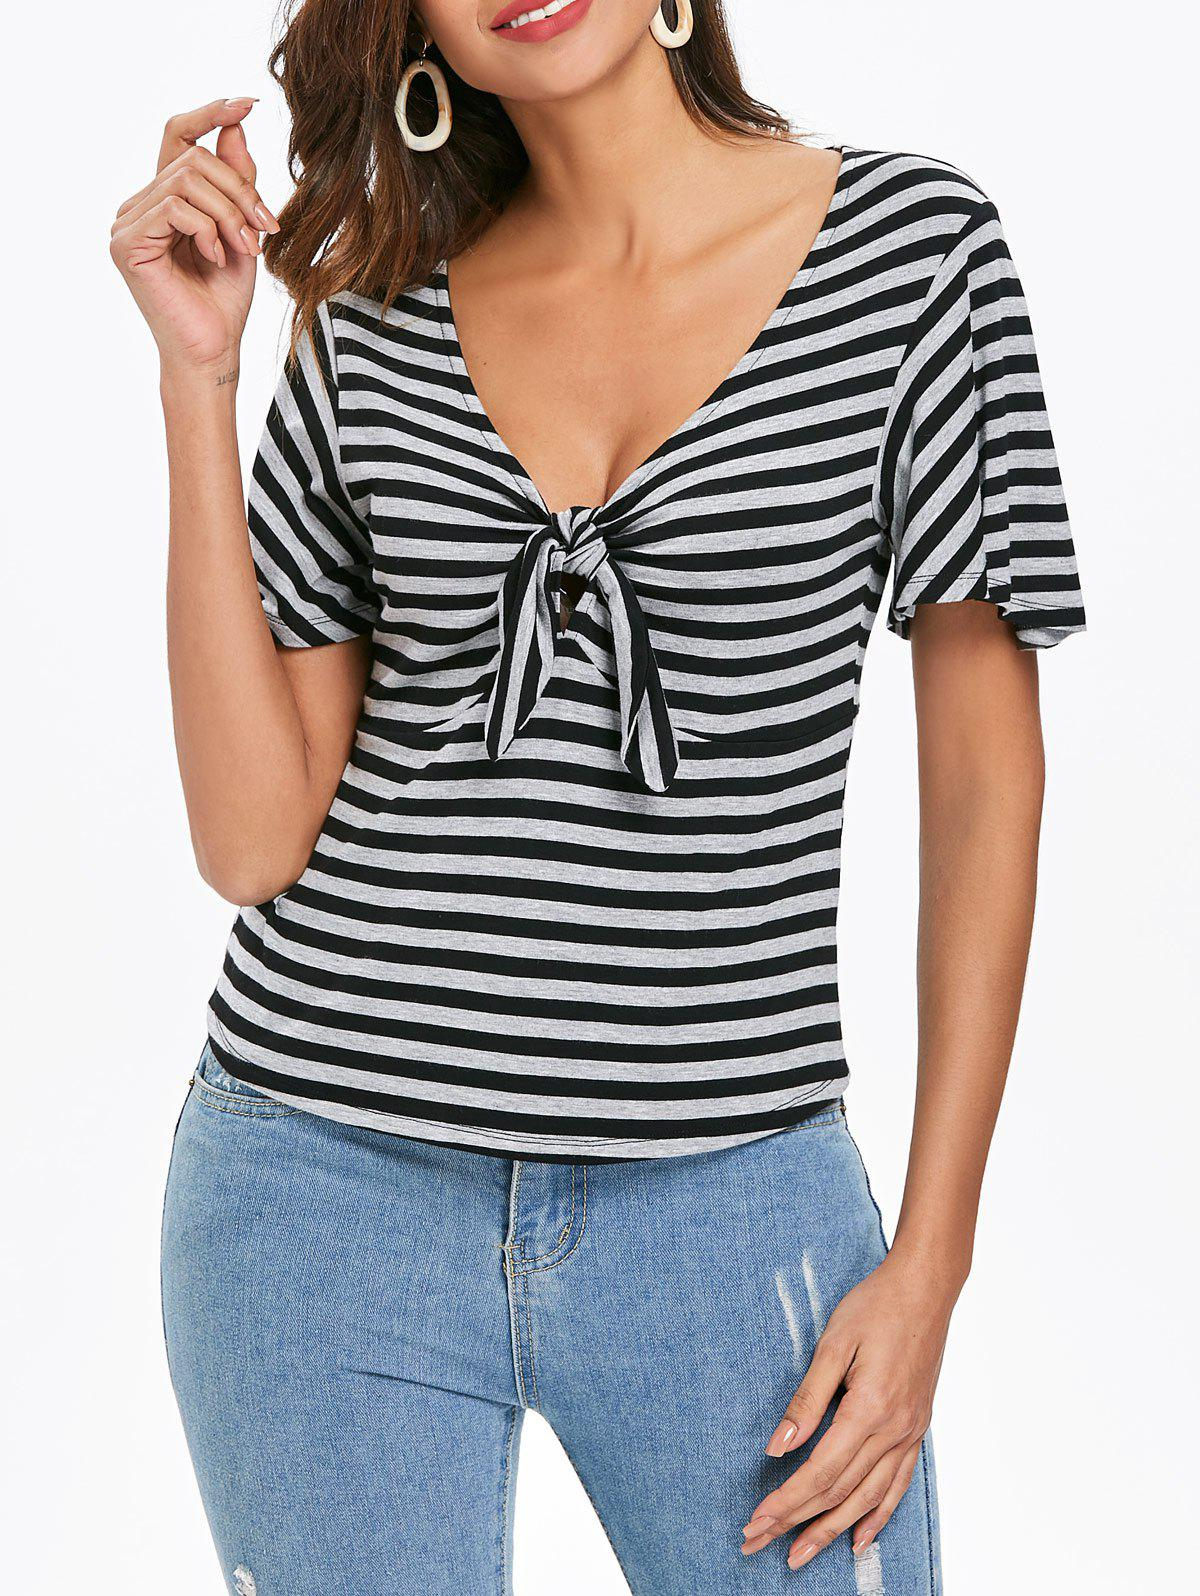 Unique Striped Knot Tie T-shirt